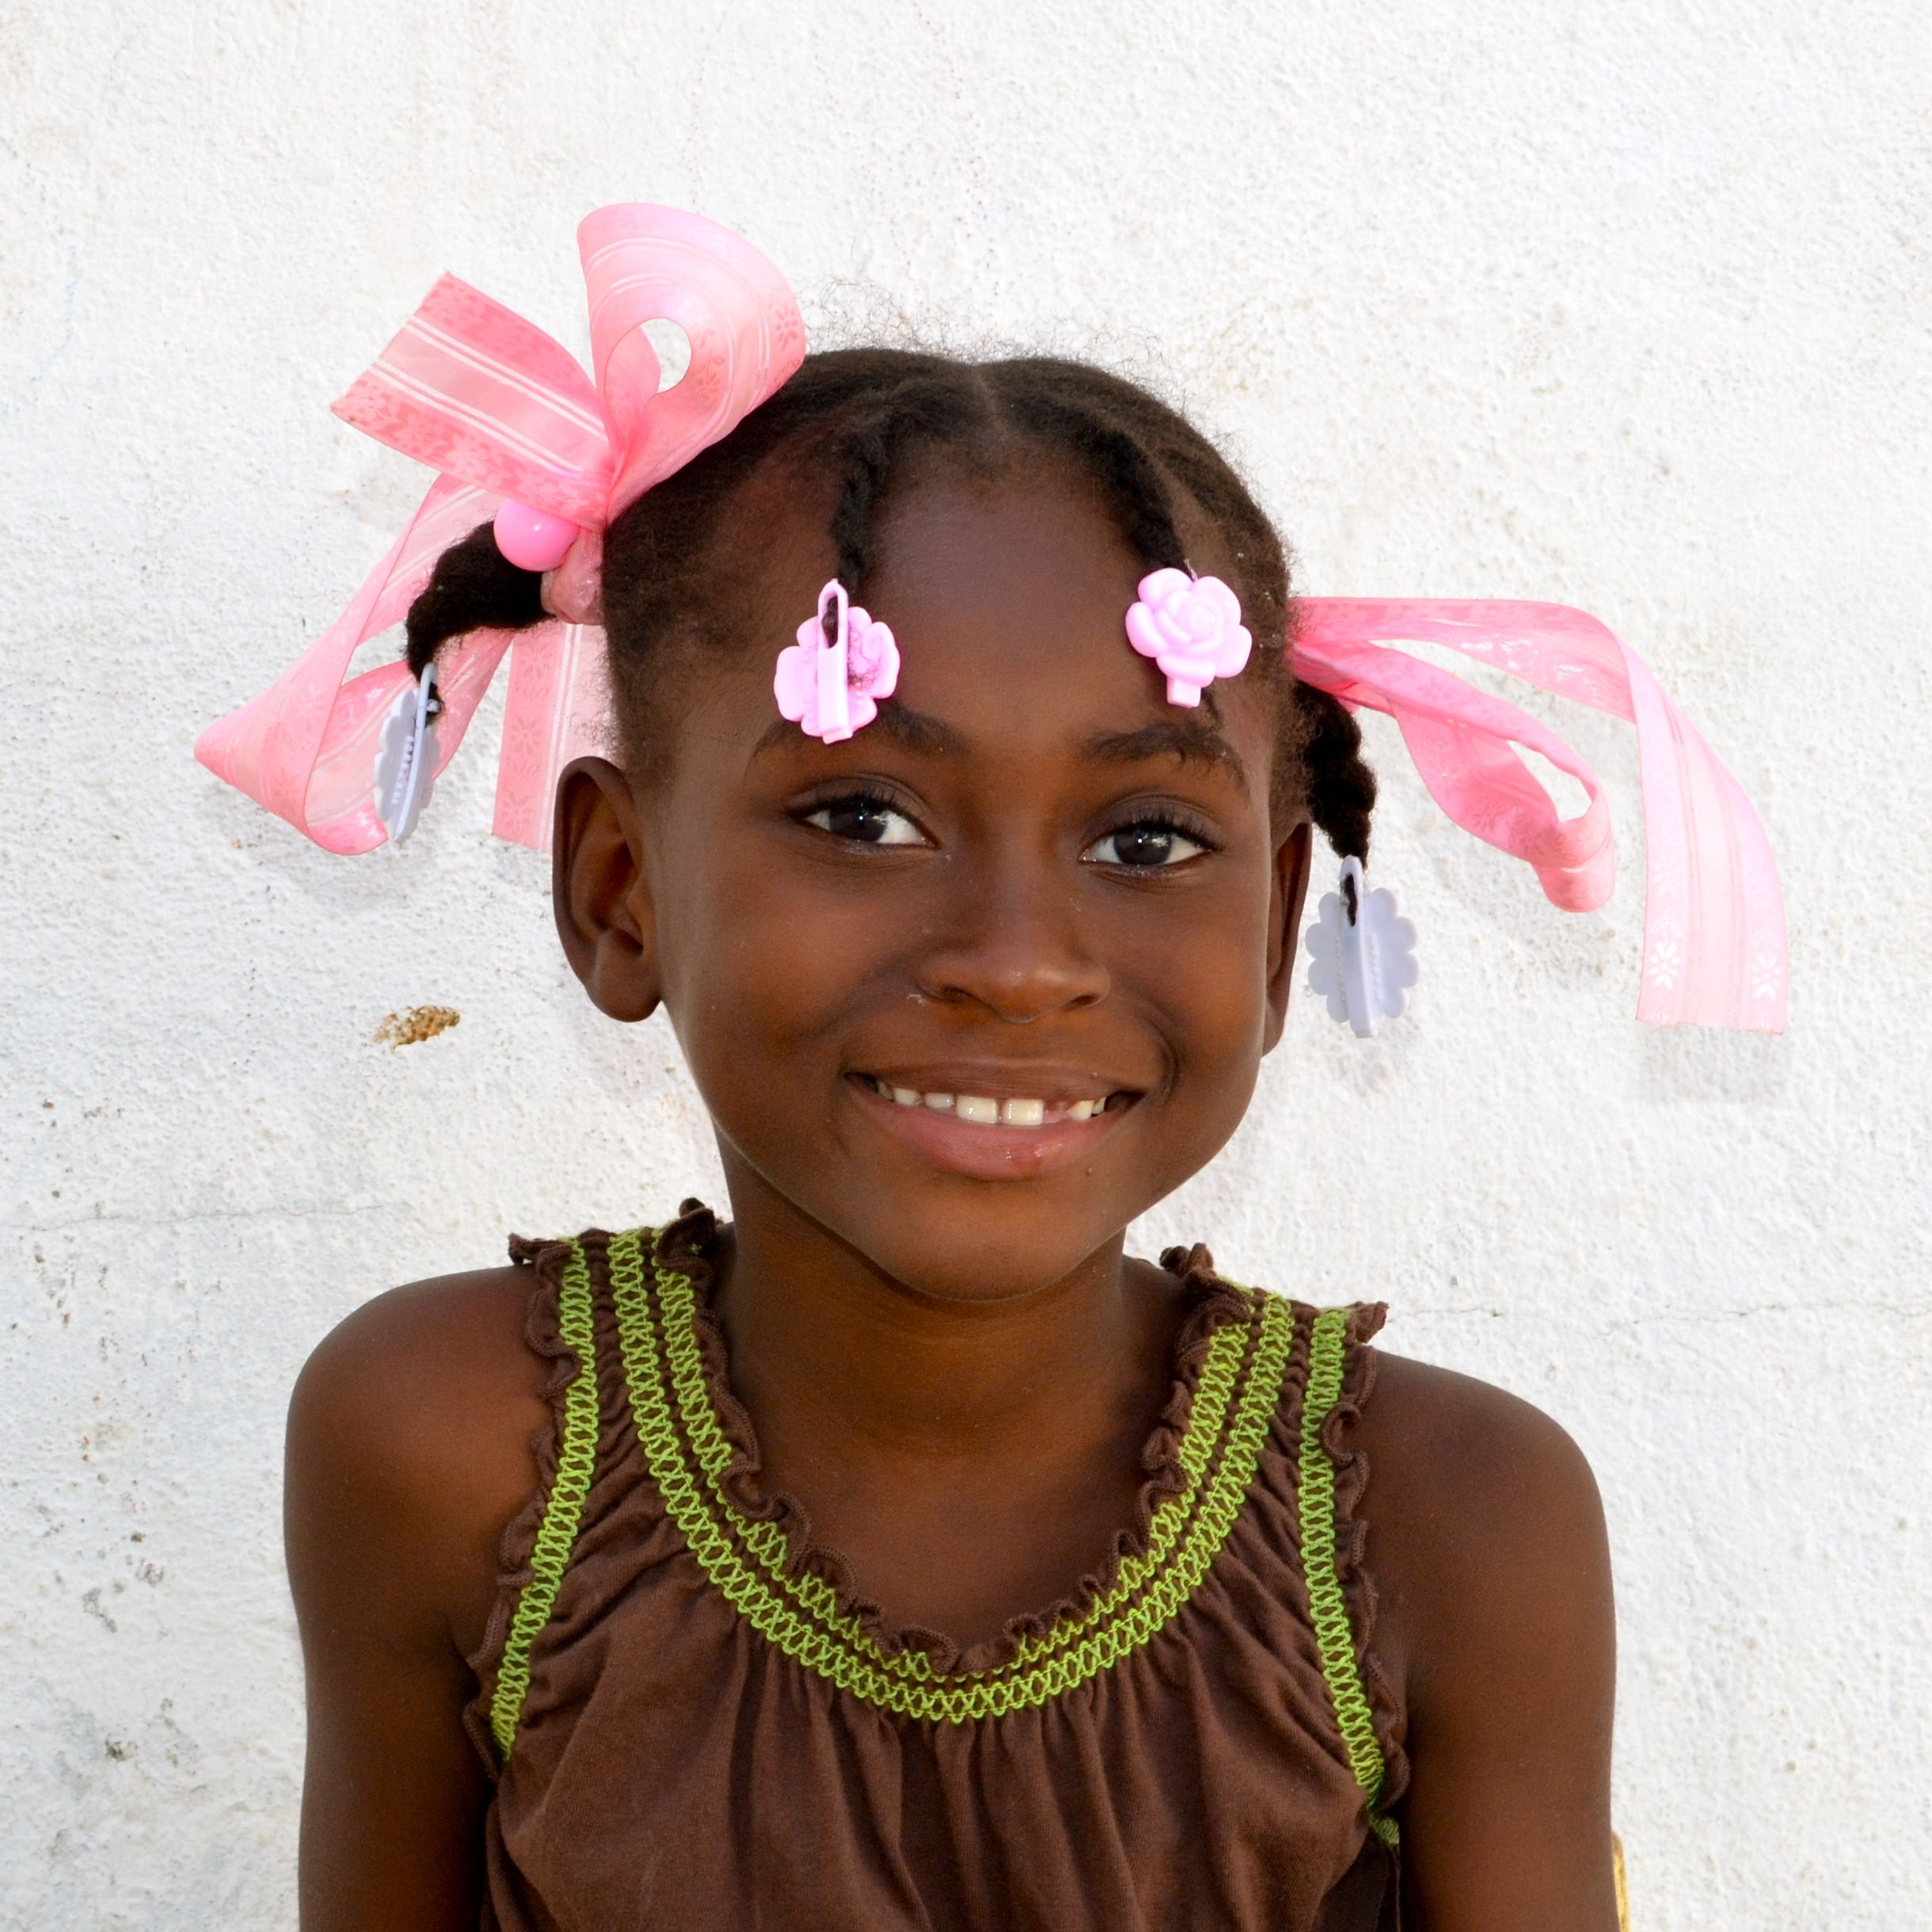 Rosa from Port au Prince is all girl. She loves dolls